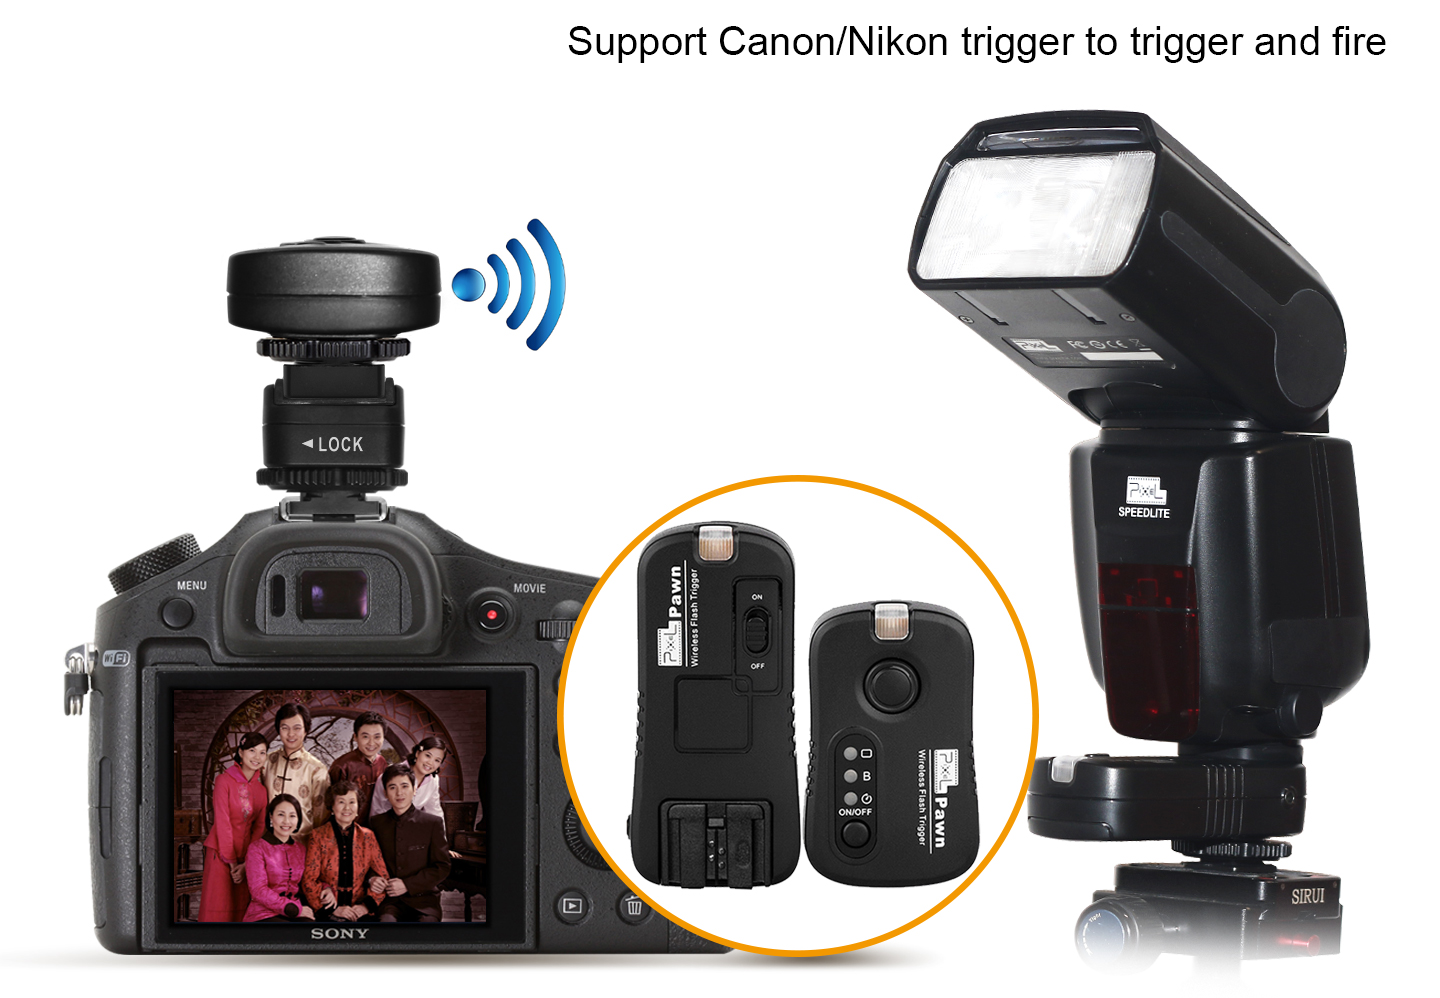 Support Canon/Nikon trigger and fire